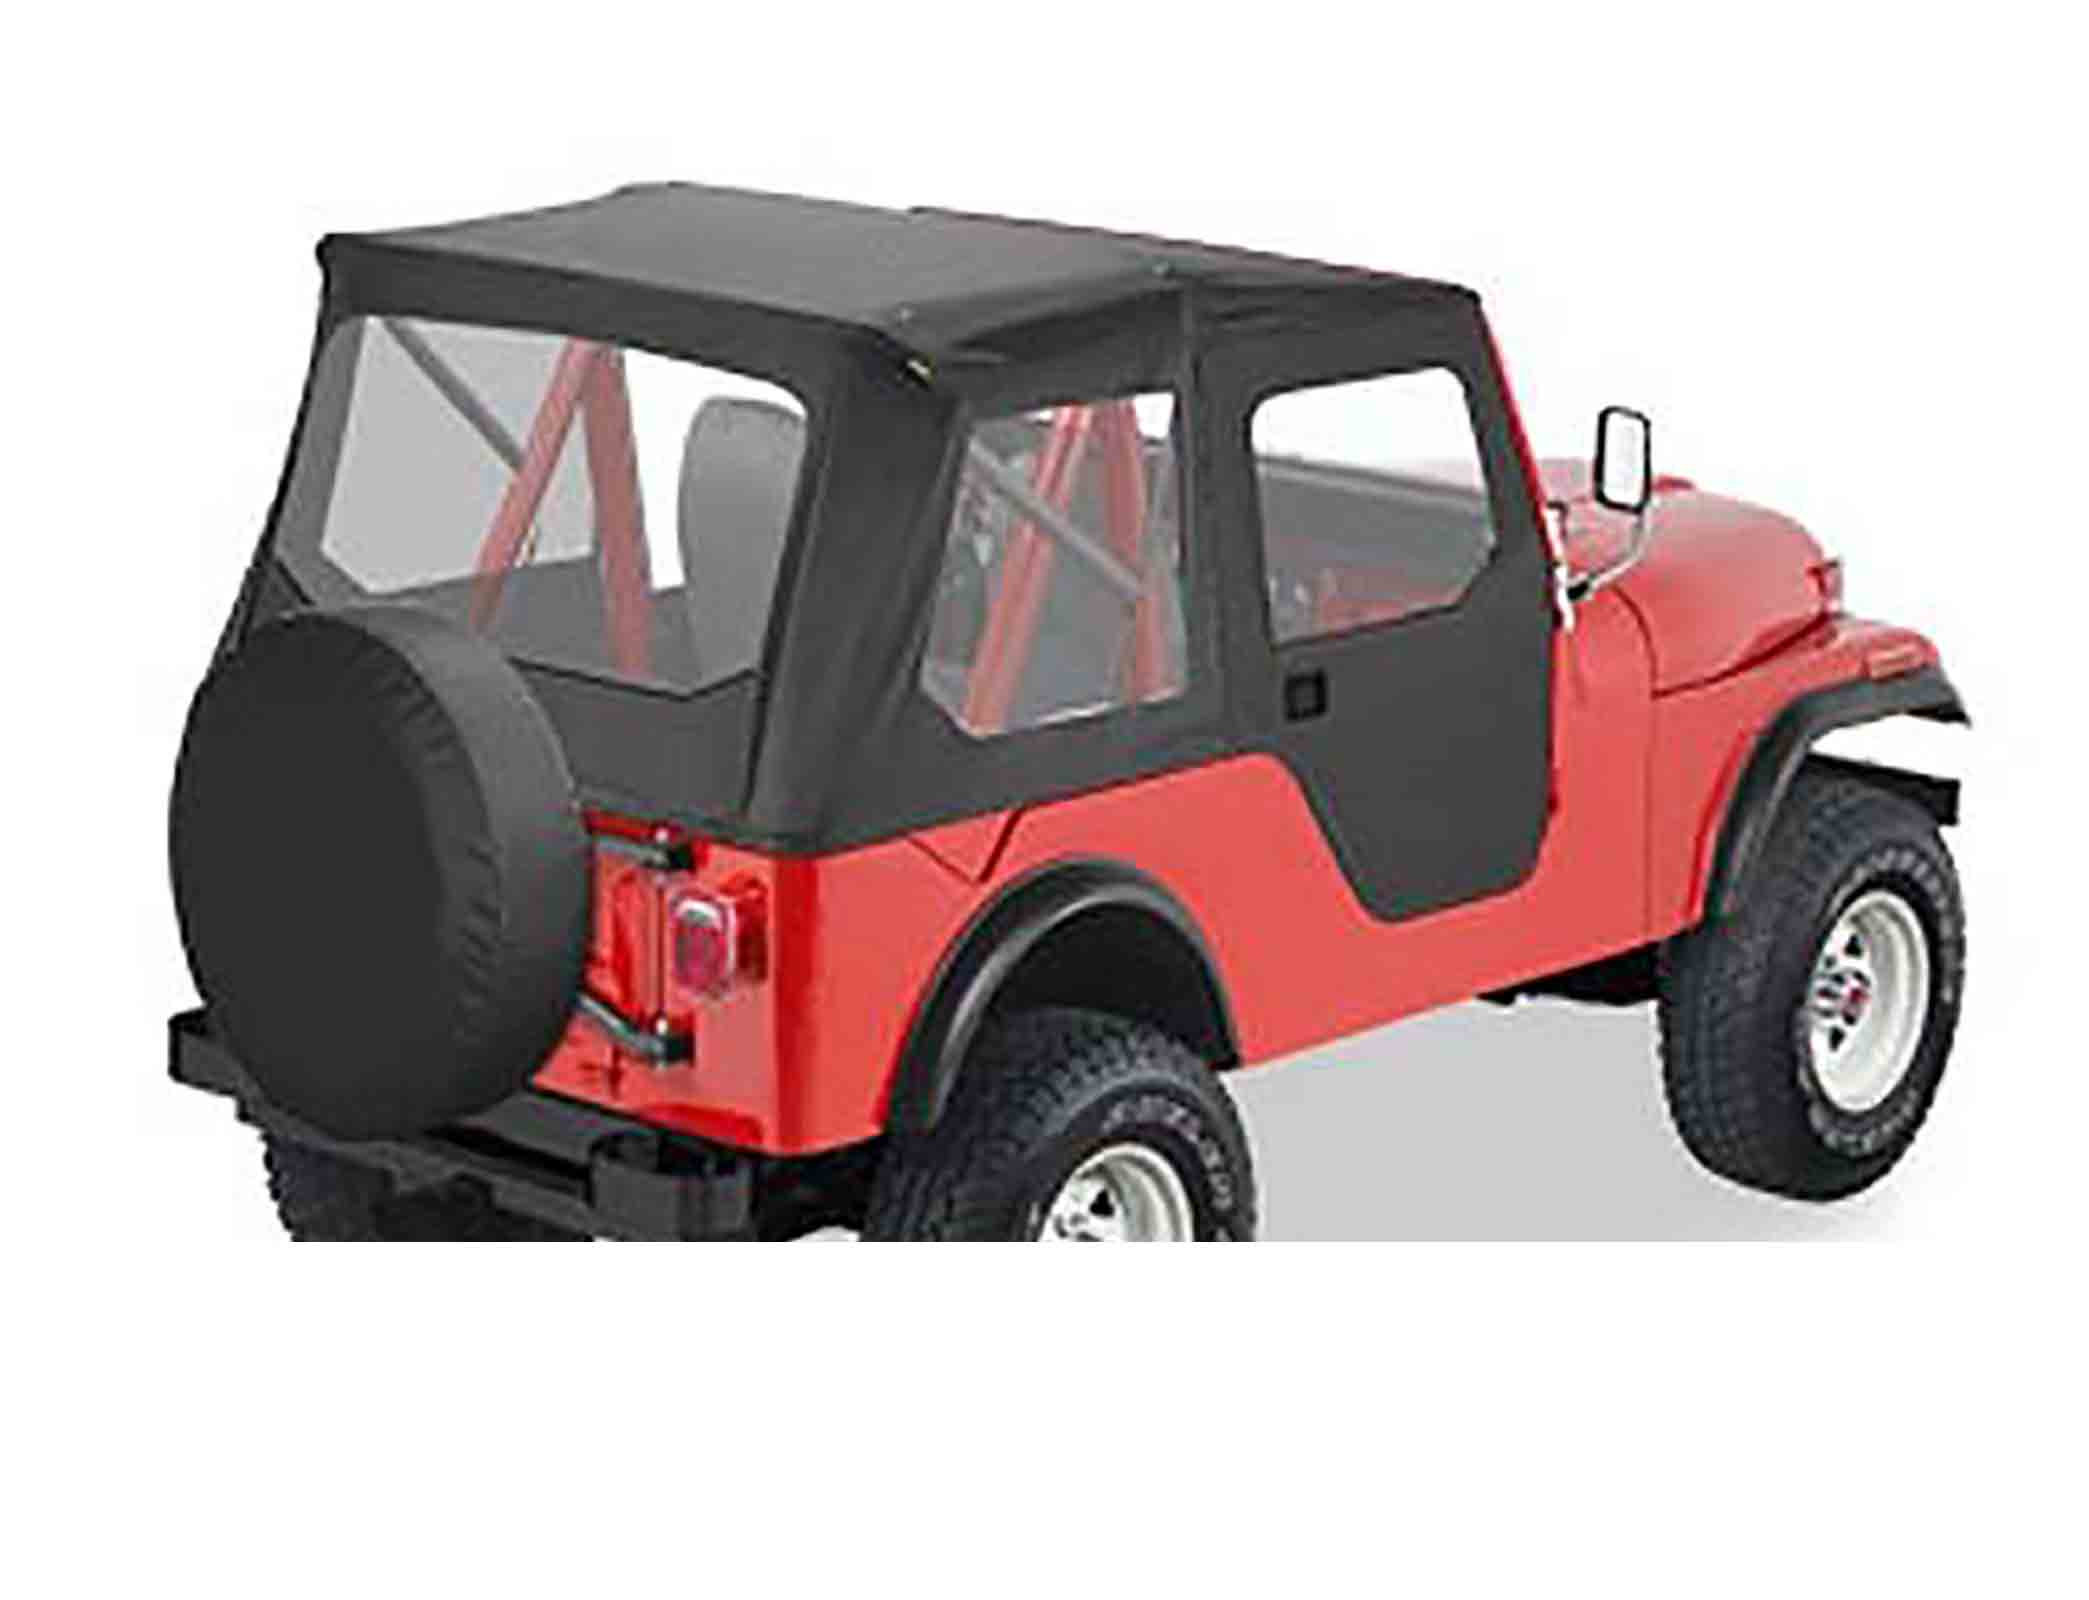 Tigertop softtop soft top capottina jeep cj5 55 75 senza centina ricambi jeep